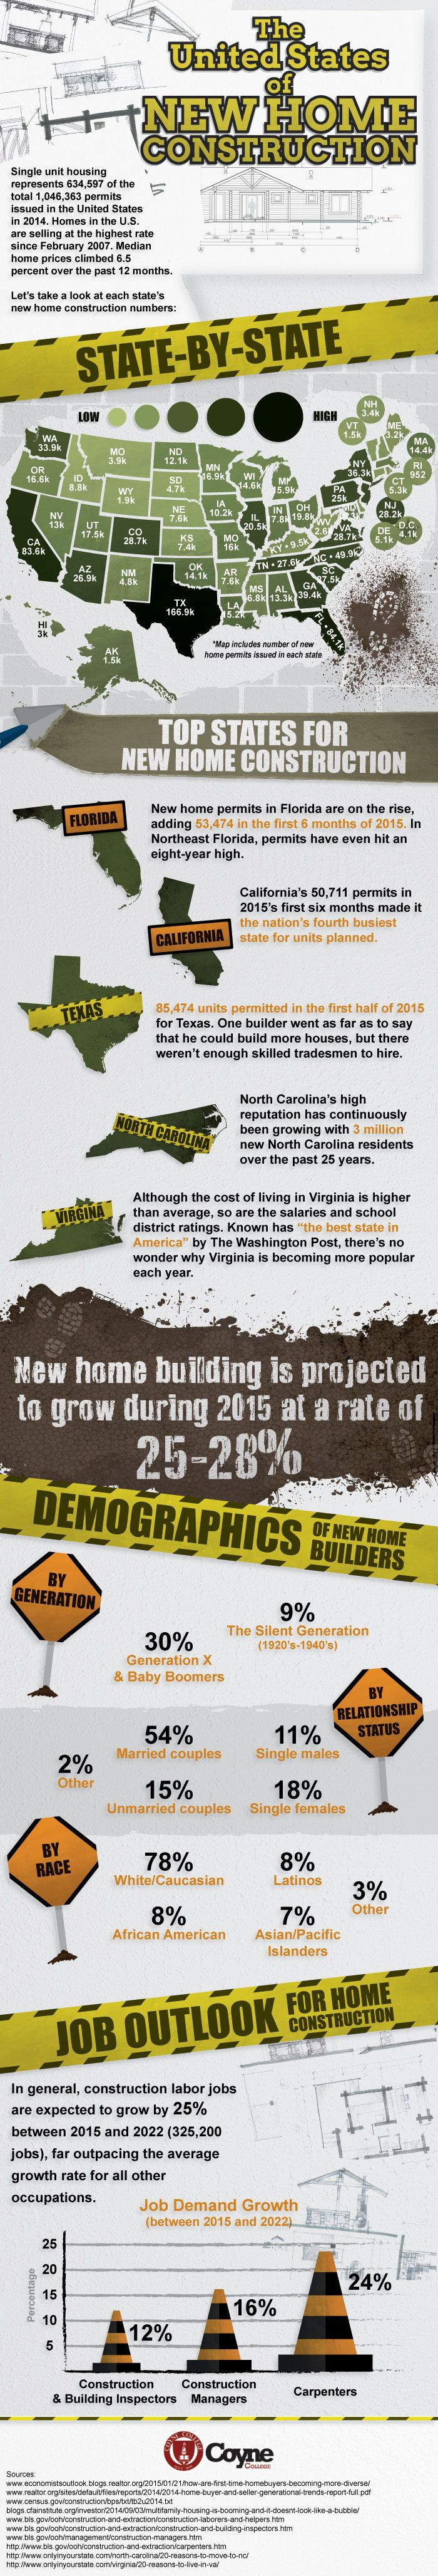 A Guide to New Home Construction | construction2style